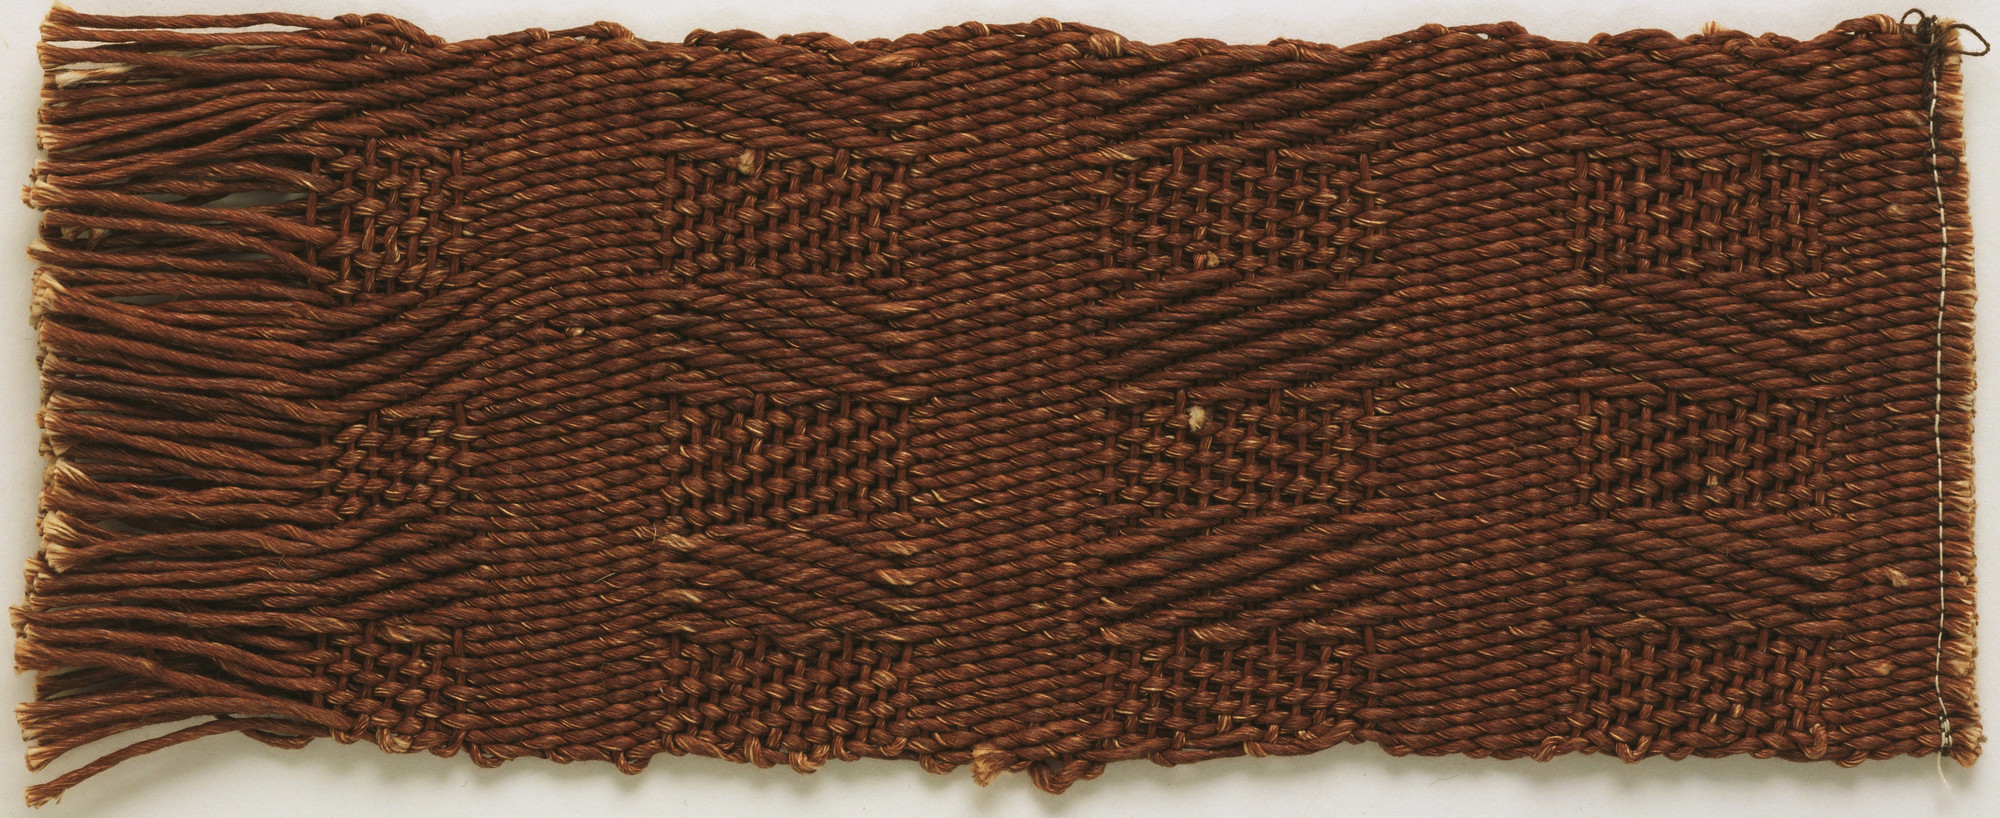 Anni Albers. Fabric Sample. c. 1948